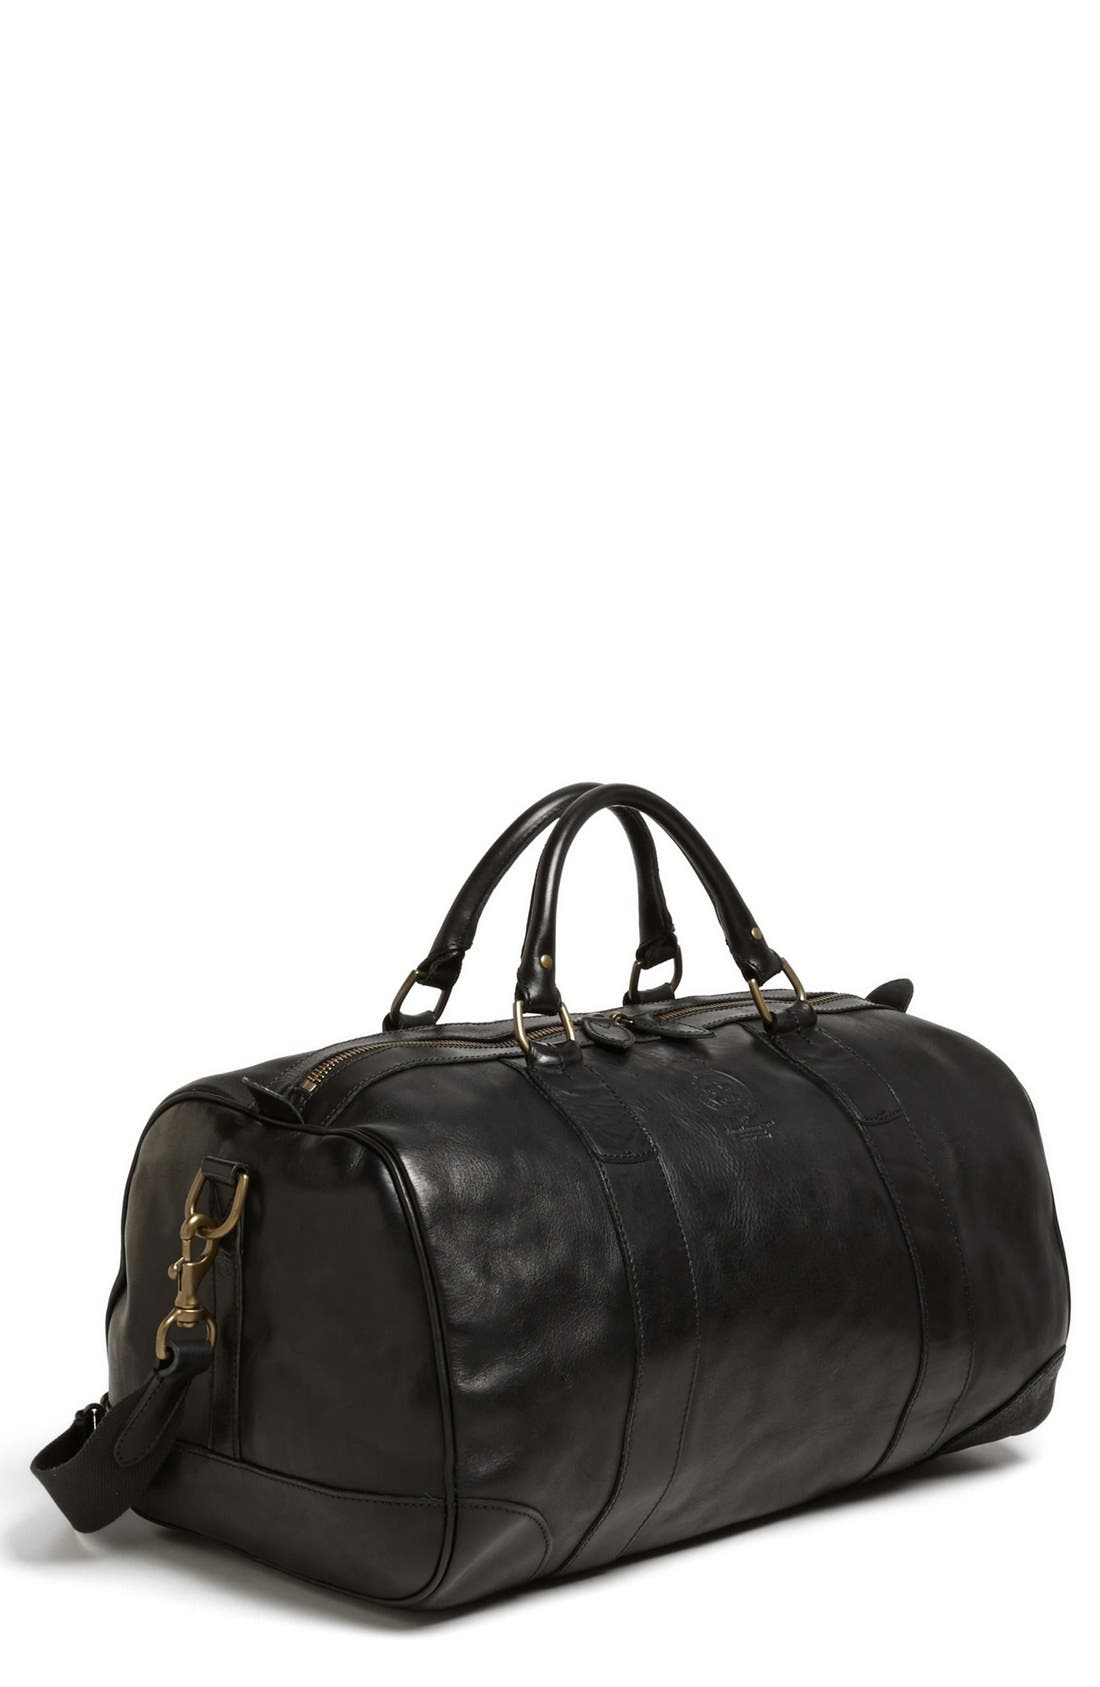 Main Image - Polo Ralph Lauren Leather Gym Bag